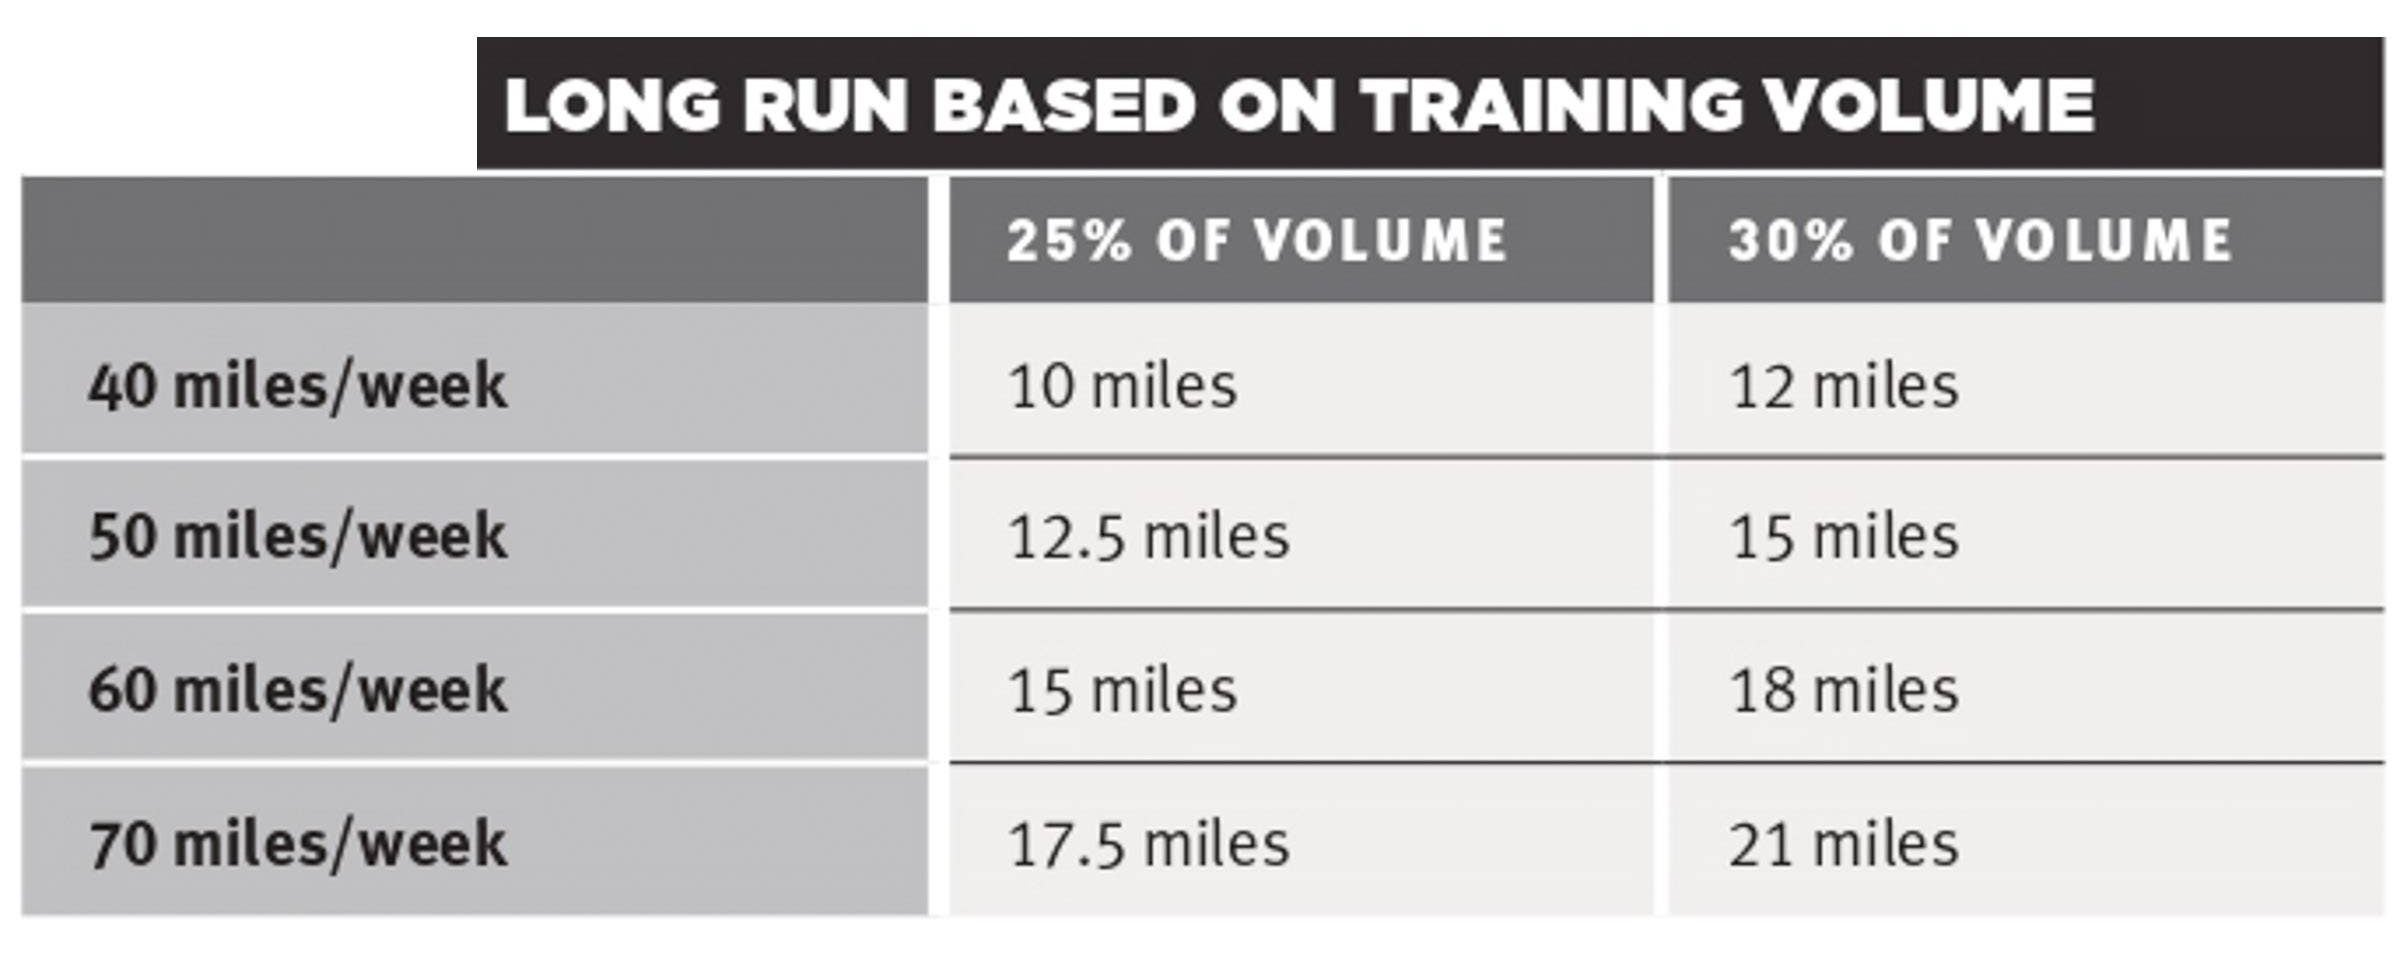 Table detailing ideal long run distance based on training volume